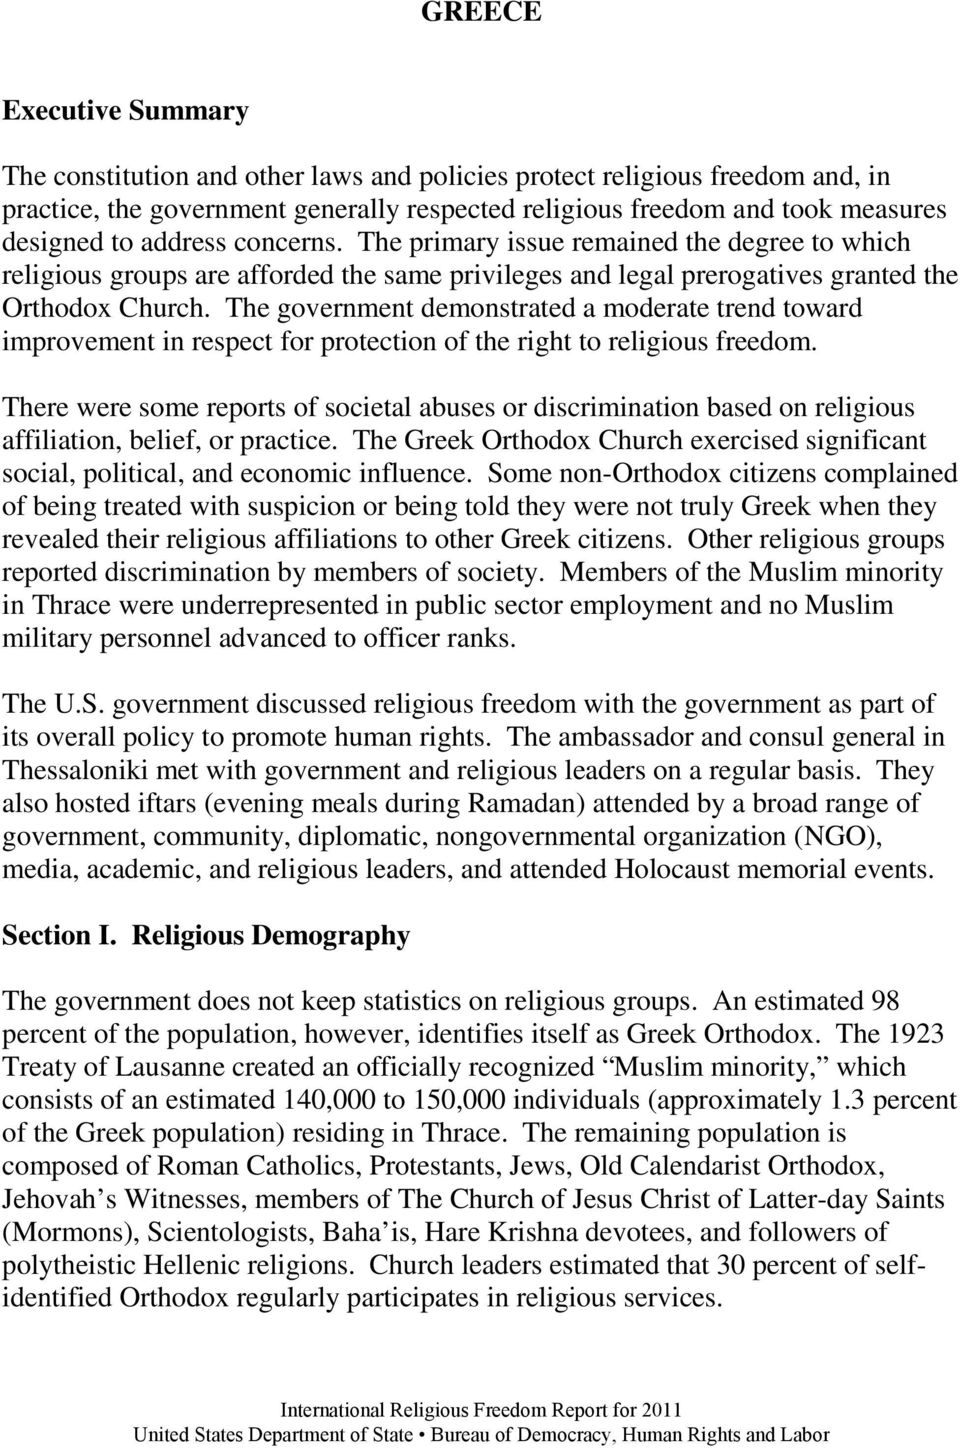 The government demonstrated a moderate trend toward improvement in respect for protection of the right to religious freedom.